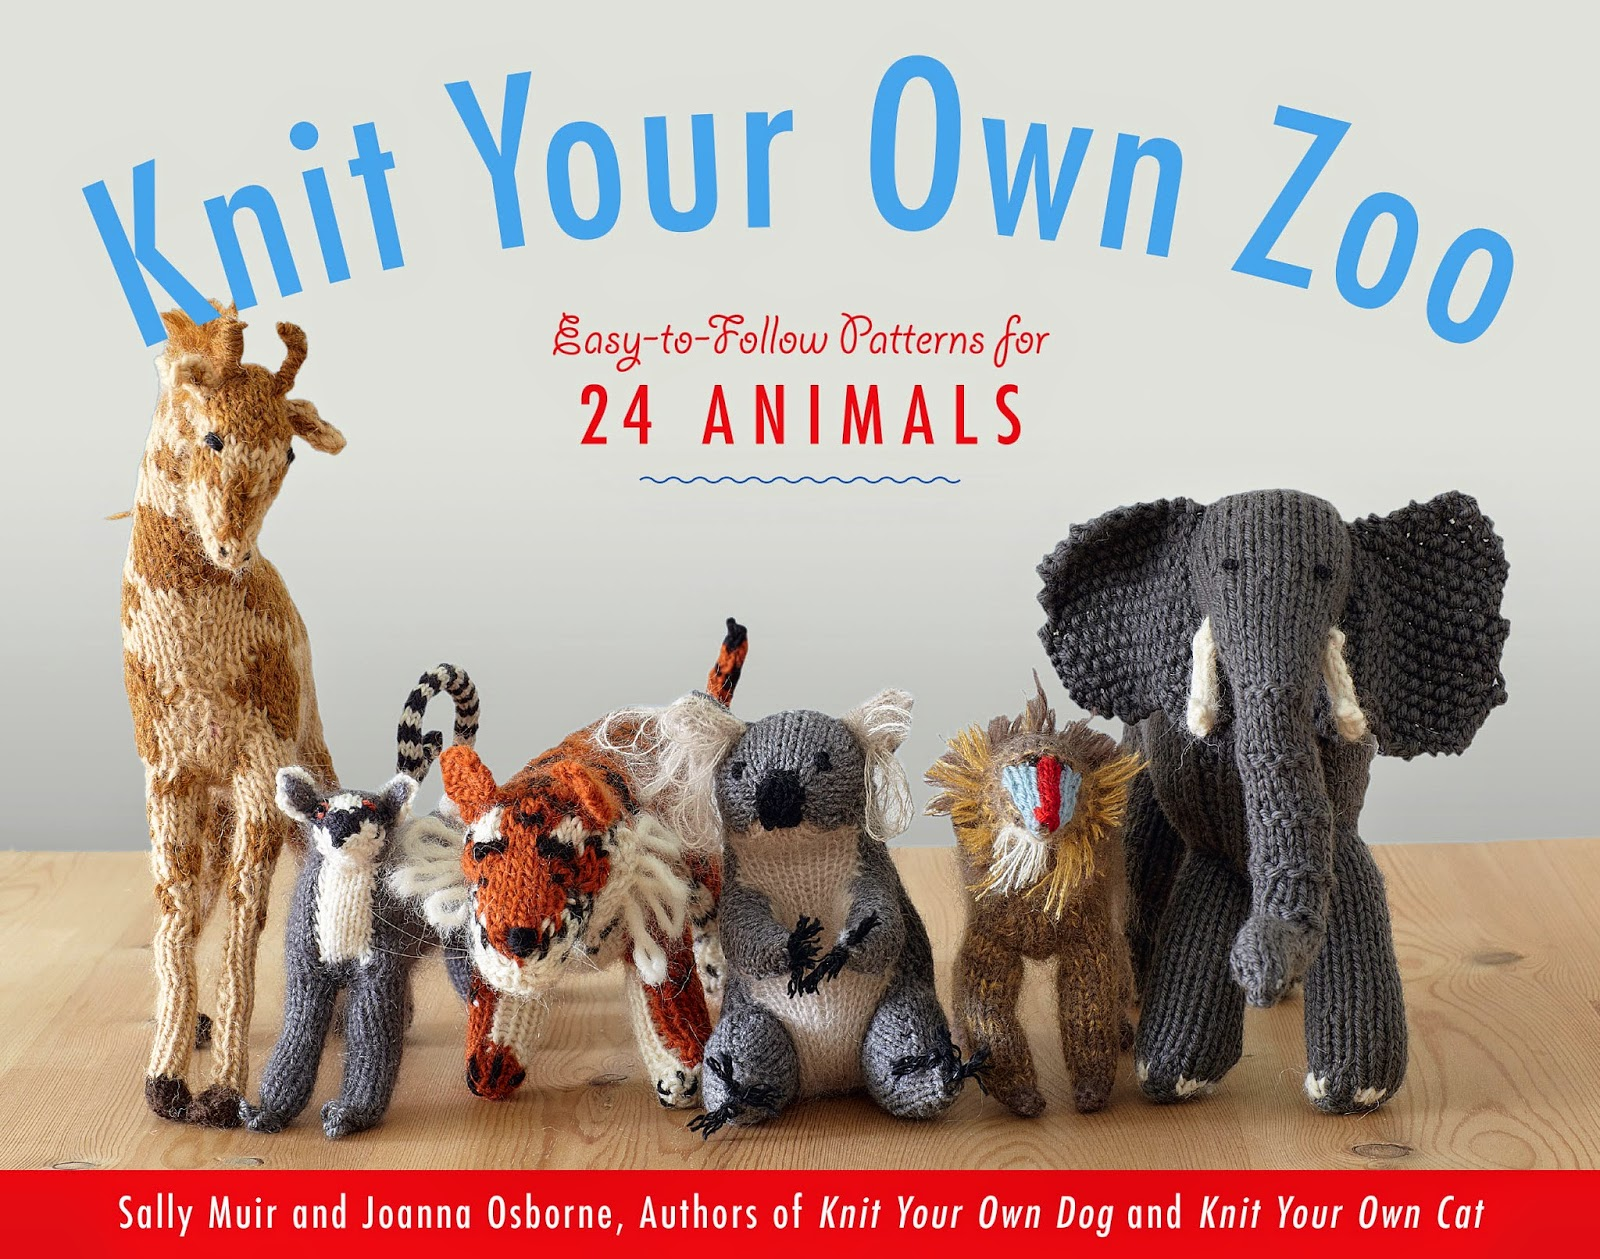 http://catalog.sno-isle.org/polaris/search/searchresults.aspx?ctx=1.1033.0.0.6&type=Advanced&term=knit%20your%20own%20zoo&relation=ALL&by=KW&bool4=AND&limit=TOM=*&sort=RELEVANCE&page=0&searchid=30